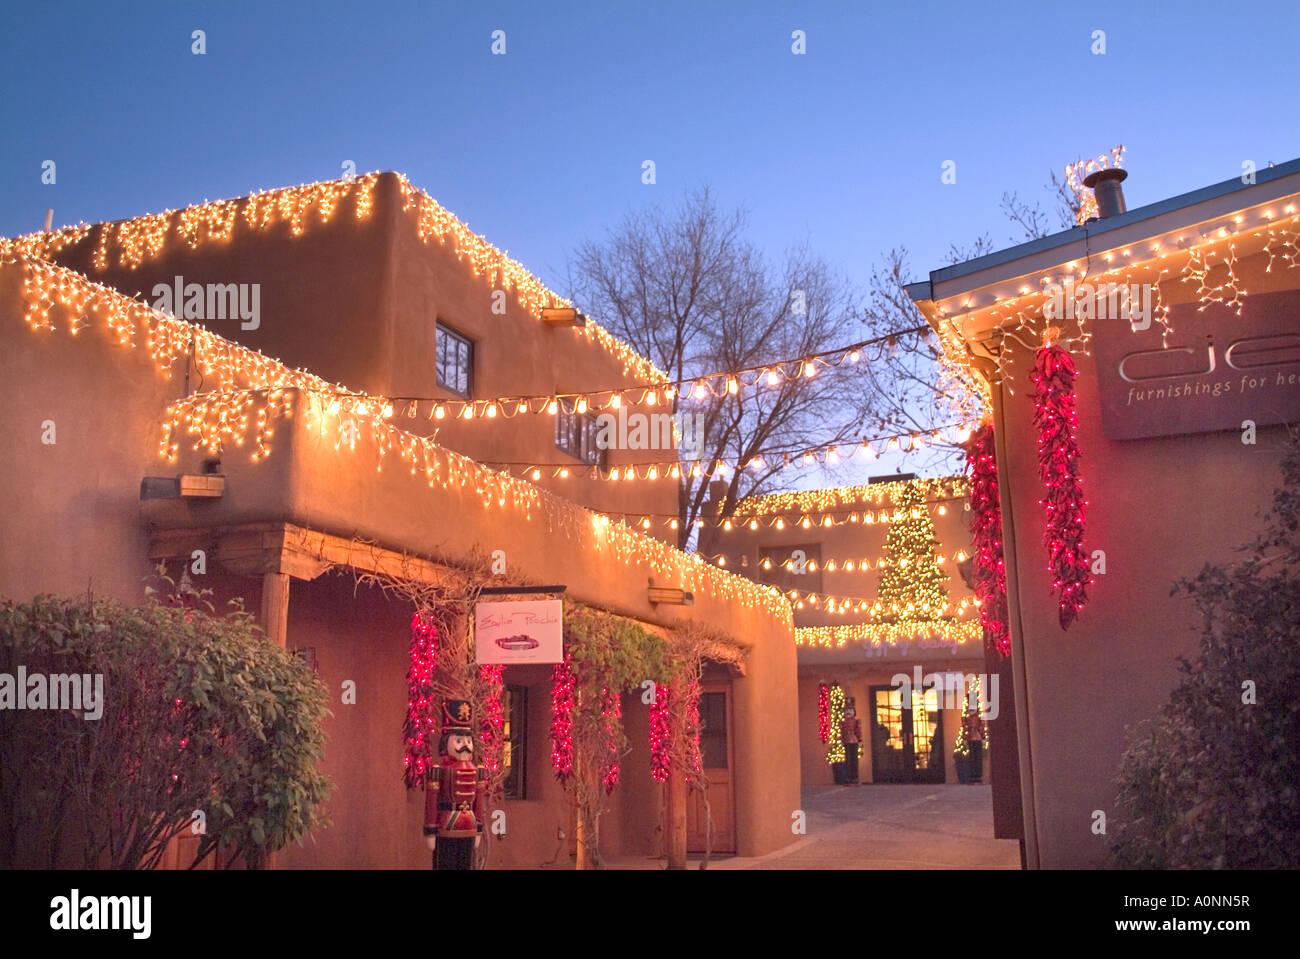 Christmas Lights On Retail Adobe Building In Santa Fe New Mexico Stock Photo Alamy